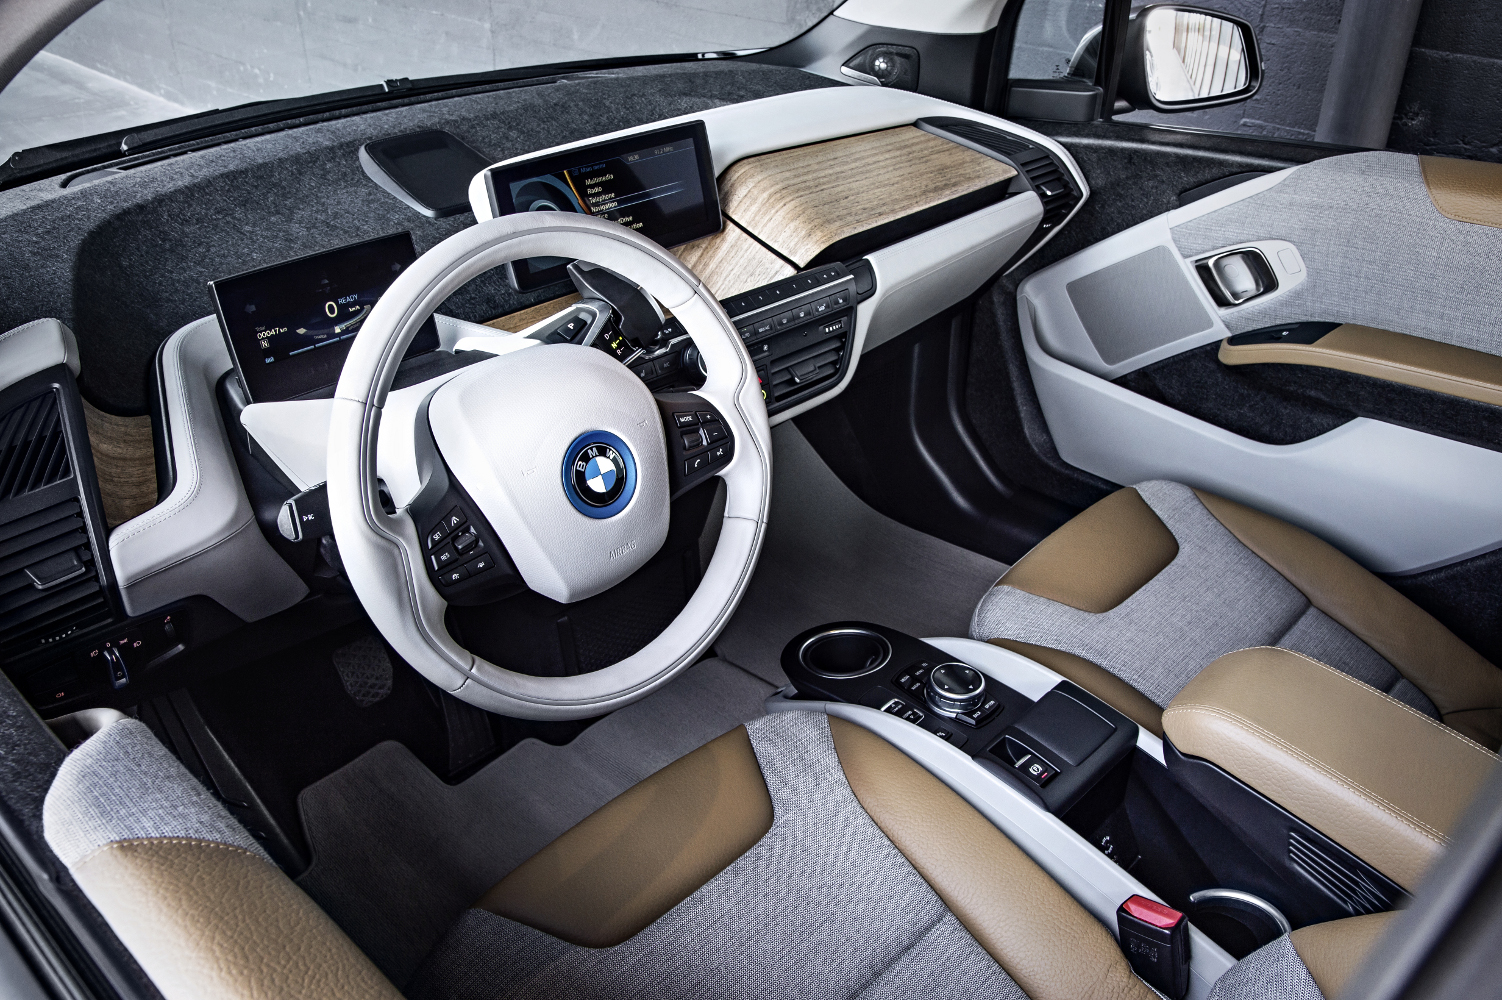 bmw i3 preis f r range extender news ausstattung elektroauto blog. Black Bedroom Furniture Sets. Home Design Ideas